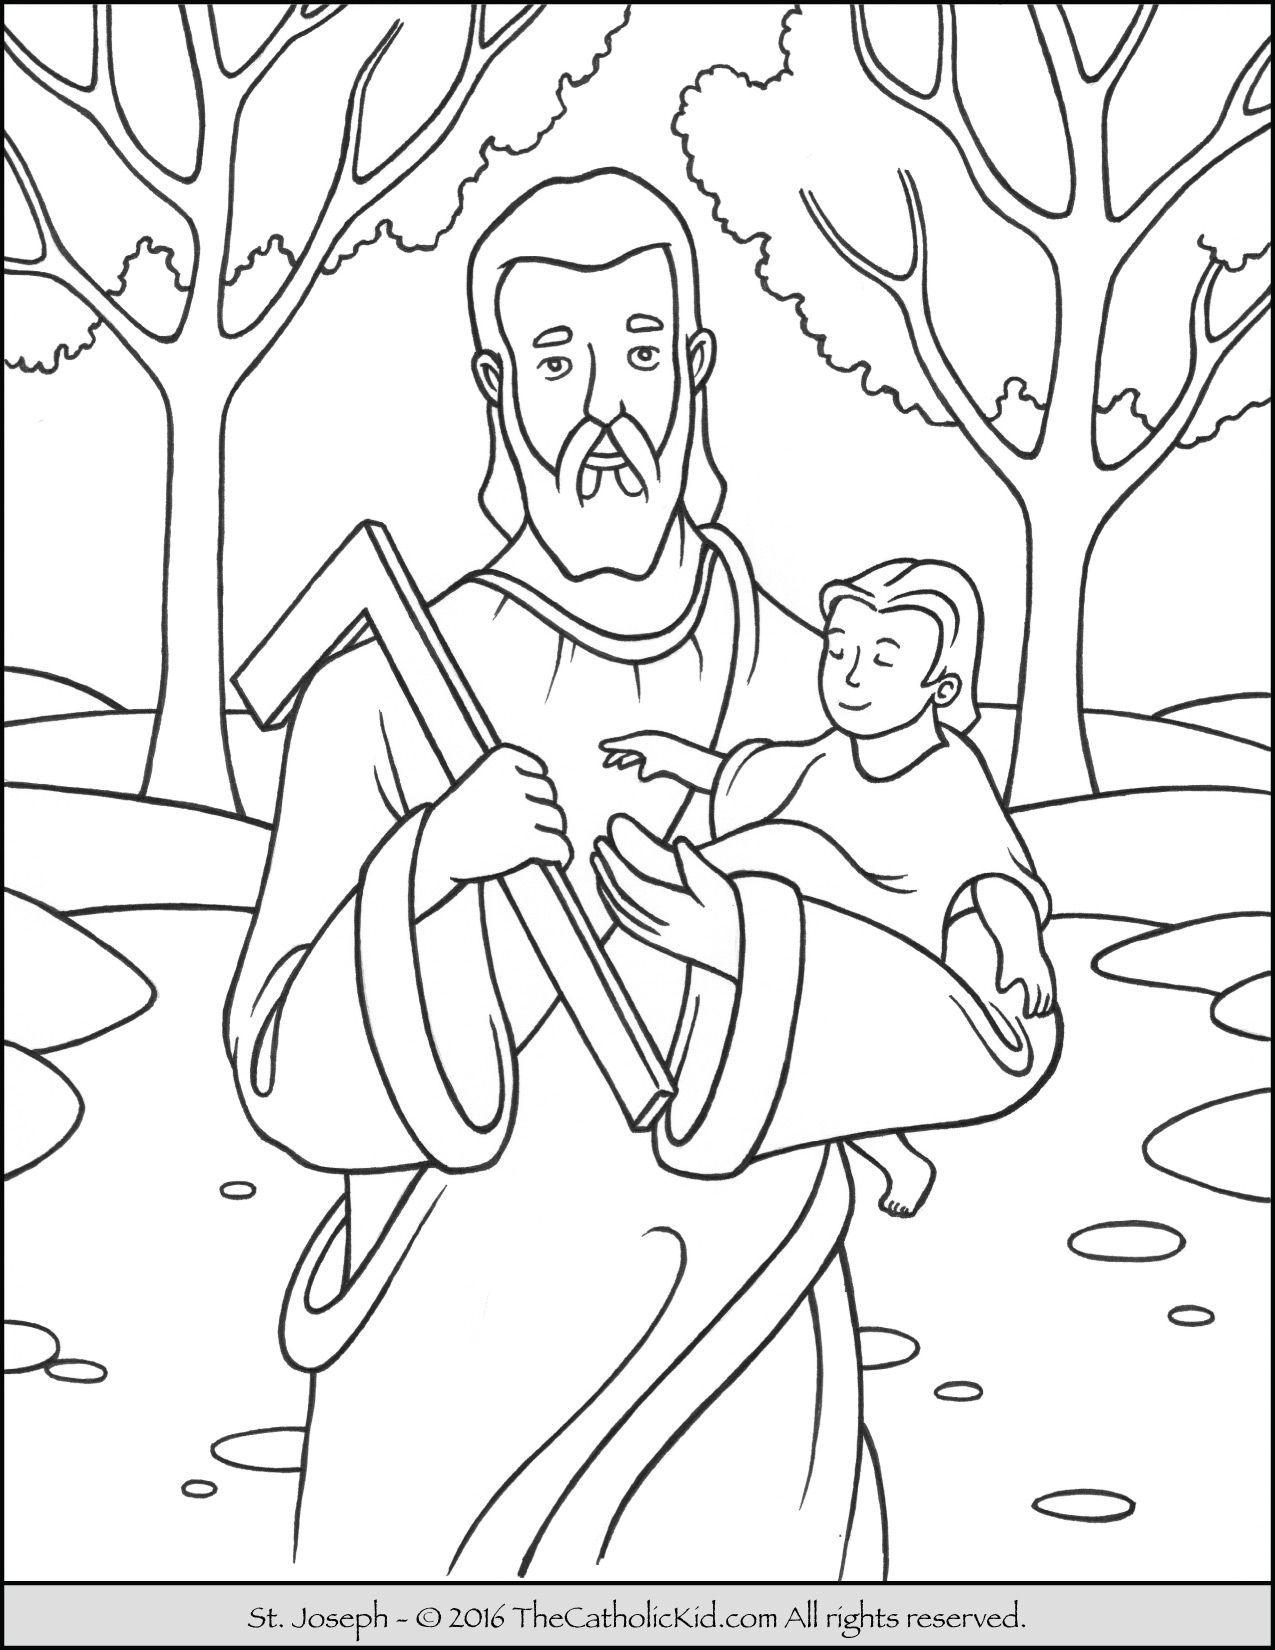 Saint Joseph Coloring Page The Catholic Kid Coloring Pages For